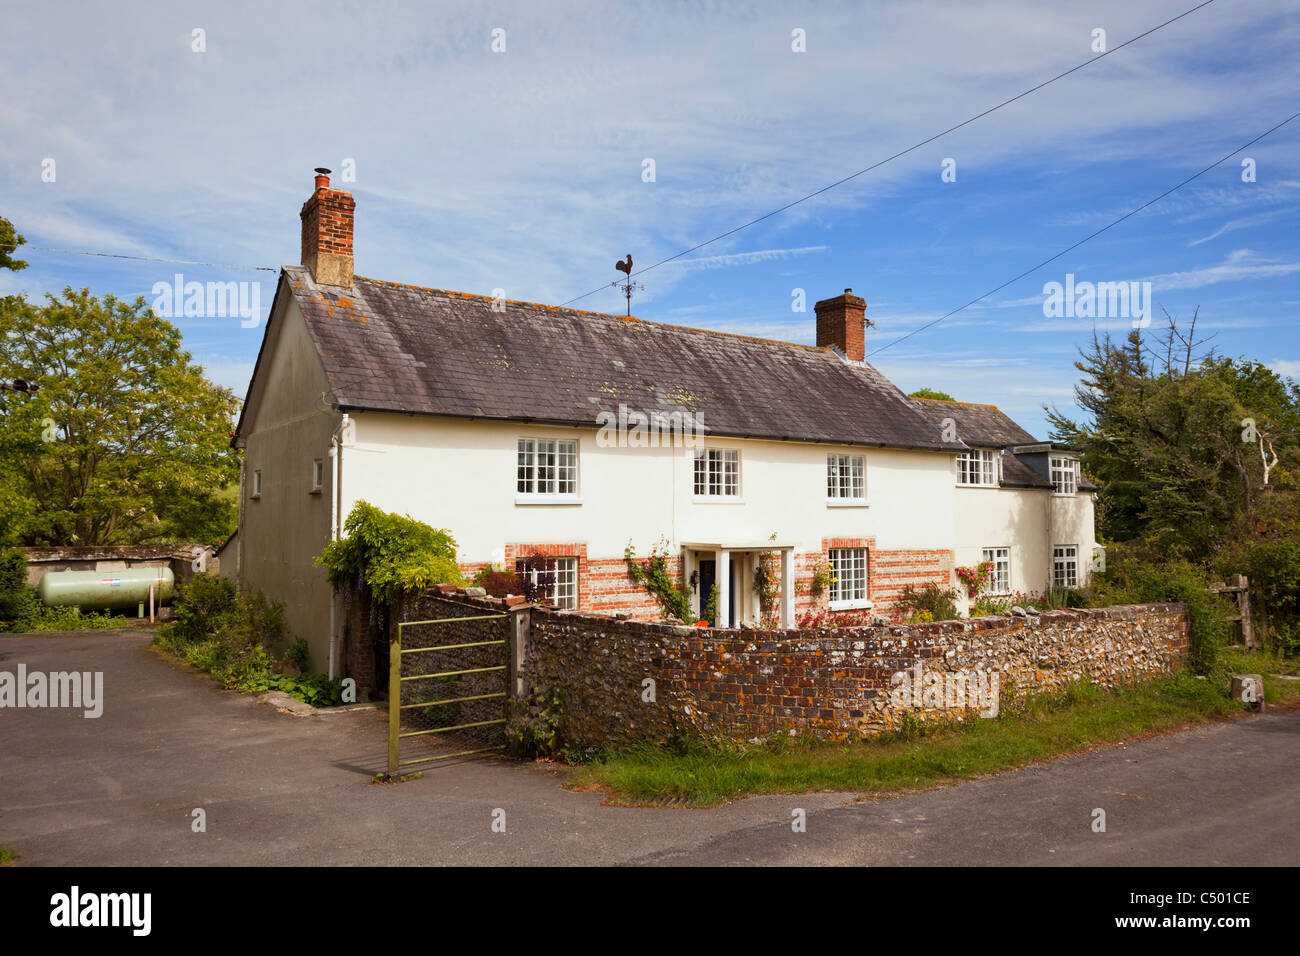 Old English country house cottage in village of Tarrant Monkton, Dorset, England, UK - Stock Image